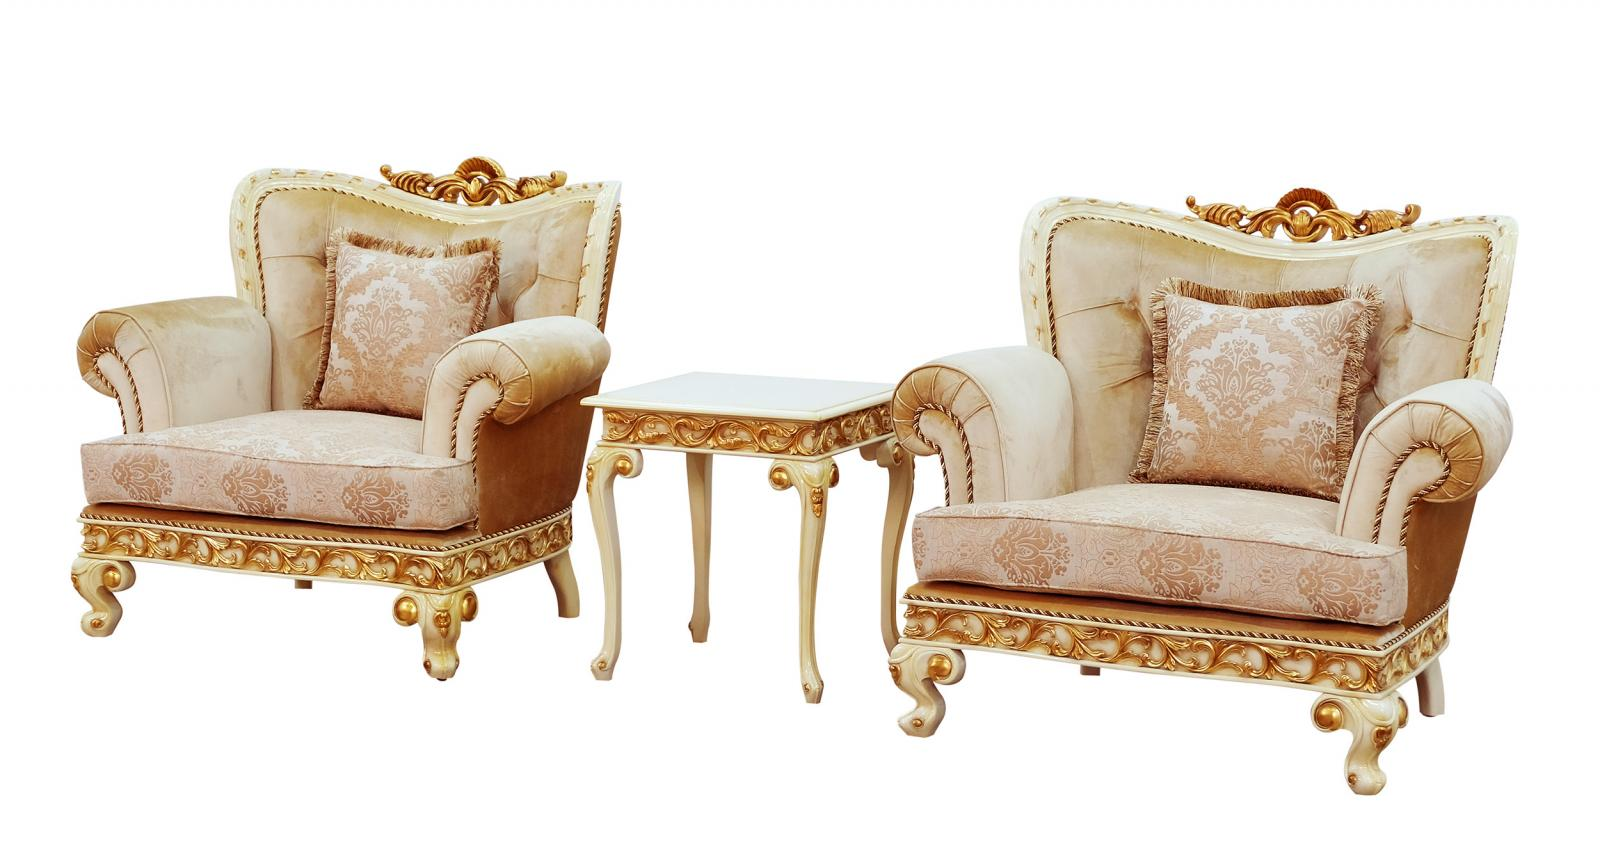 Classic  Traditional Gold  Sand  Off-White Wood  Solid Hardwood and Fabric Arm Chair Set EUROPEAN FURNITURE 40015-C-Set-2